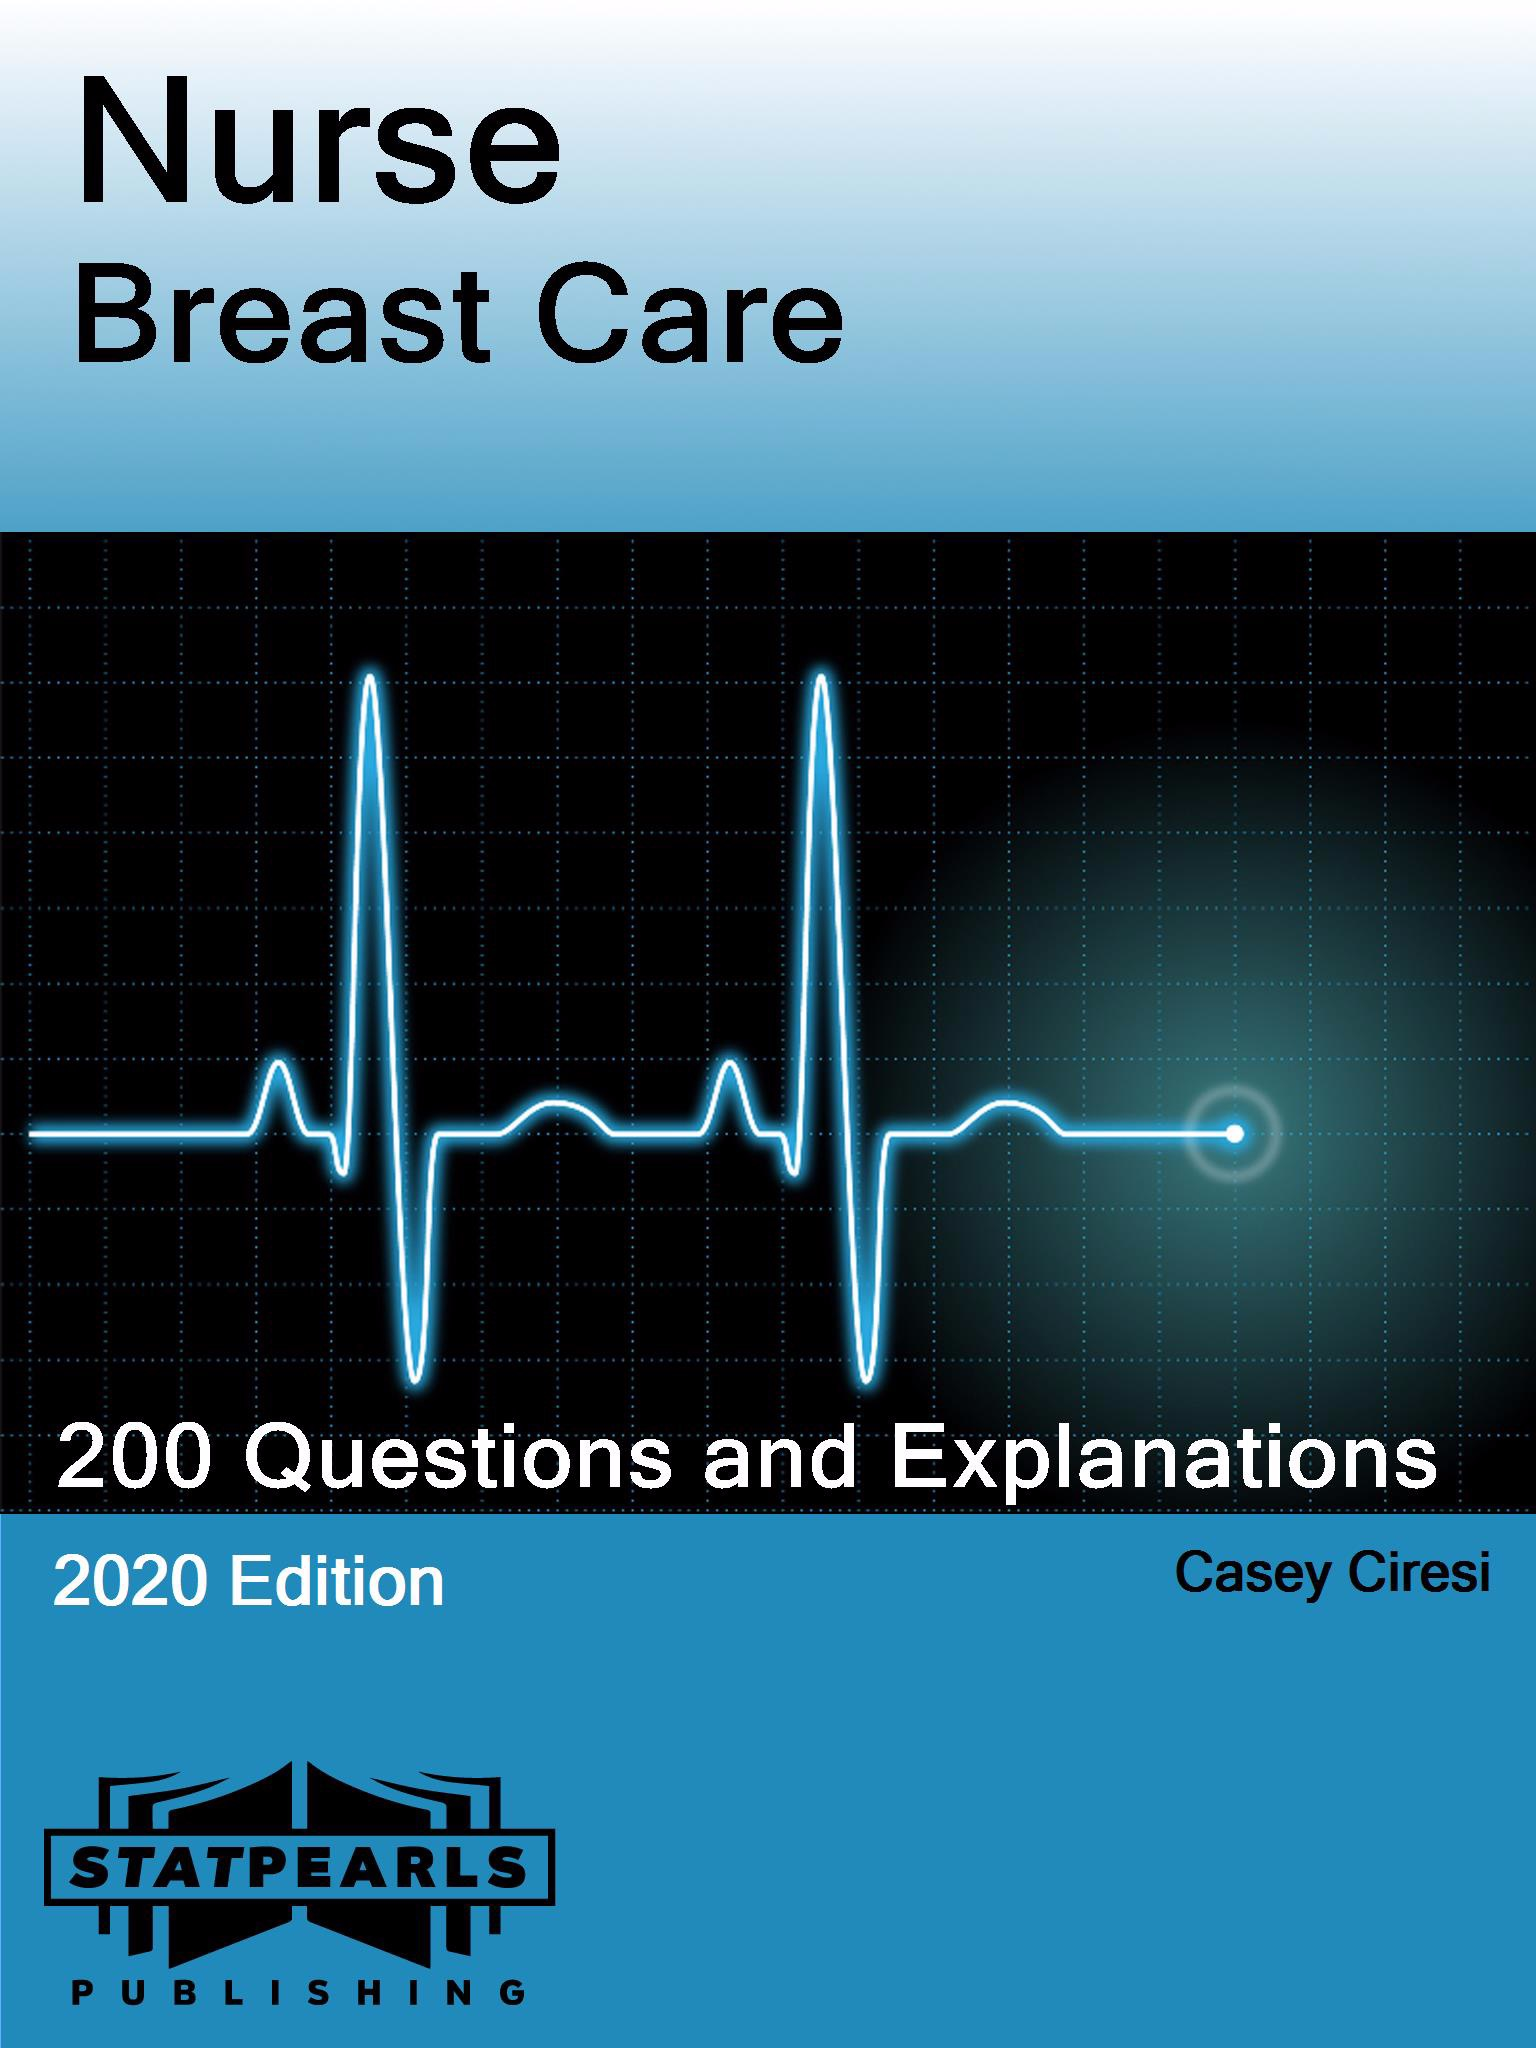 Nurse Breast Care